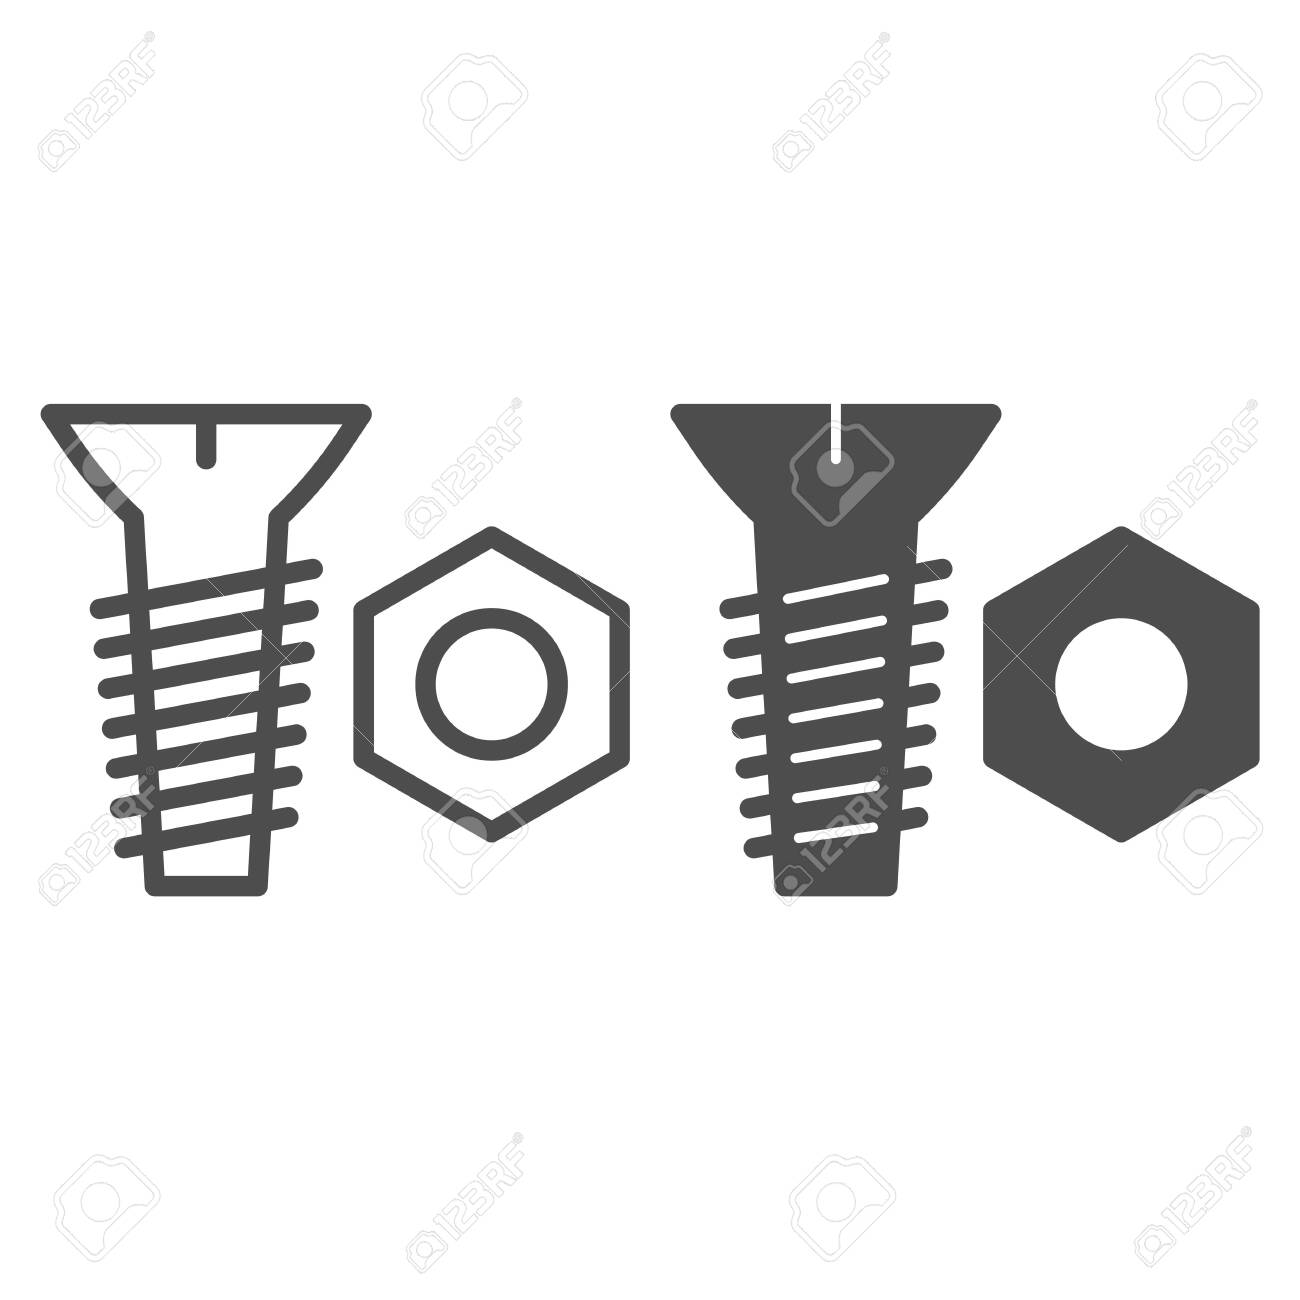 Bolt And Nut Line And Glyph Icon Screw And Nut Vector Illustration Royalty Free Cliparts Vectors And Stock Illustration Image 124342190